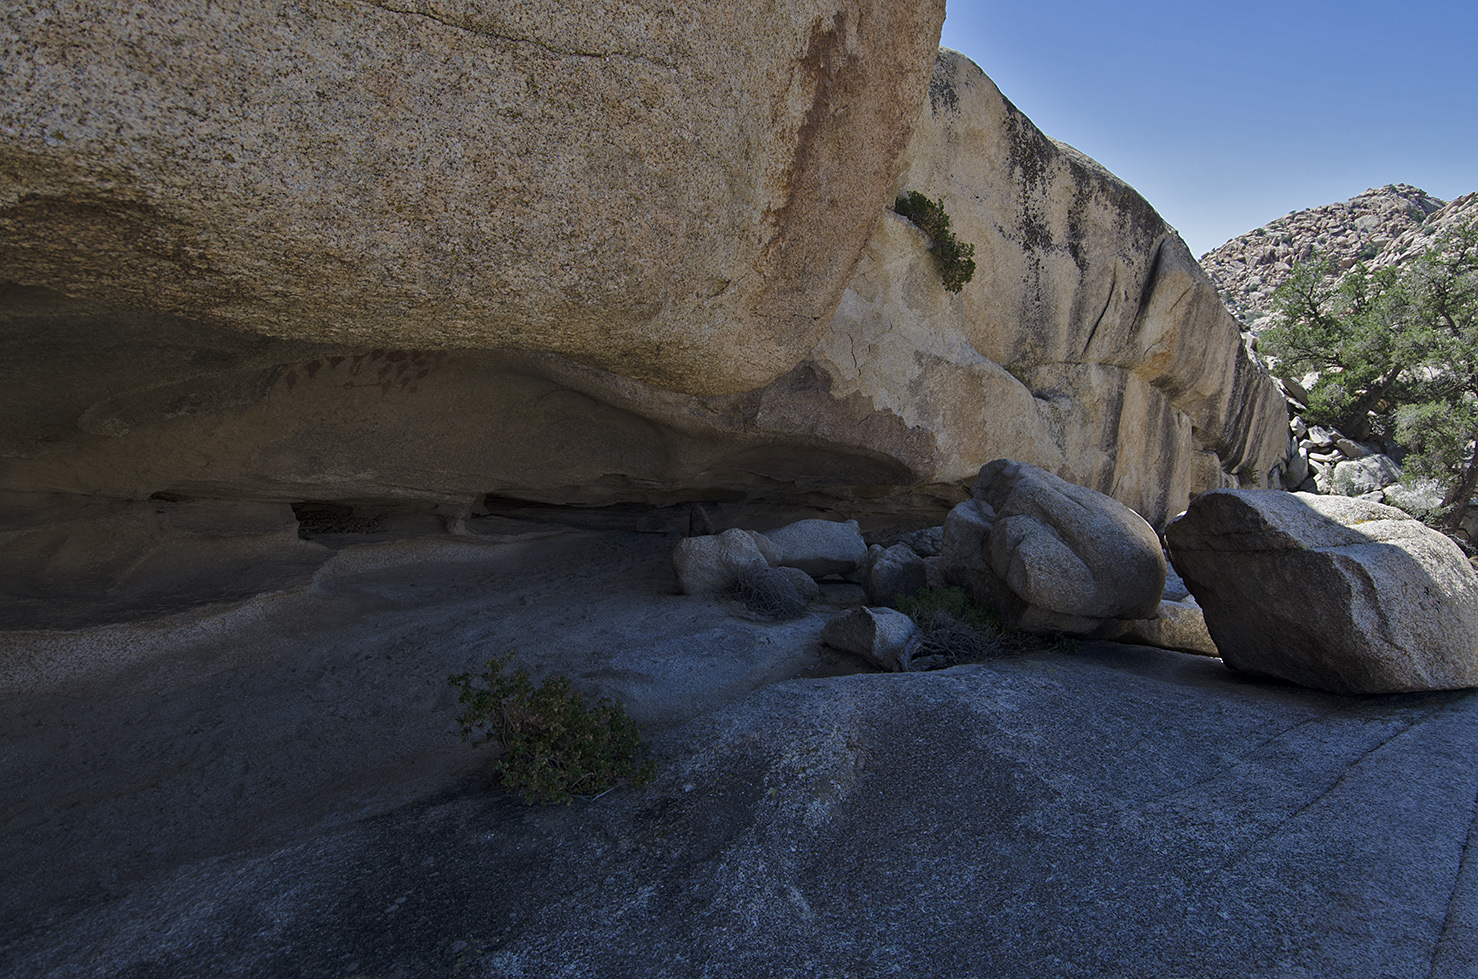 A view of the shelter. The rock ledge is fairly wide and could hold a lot of people.